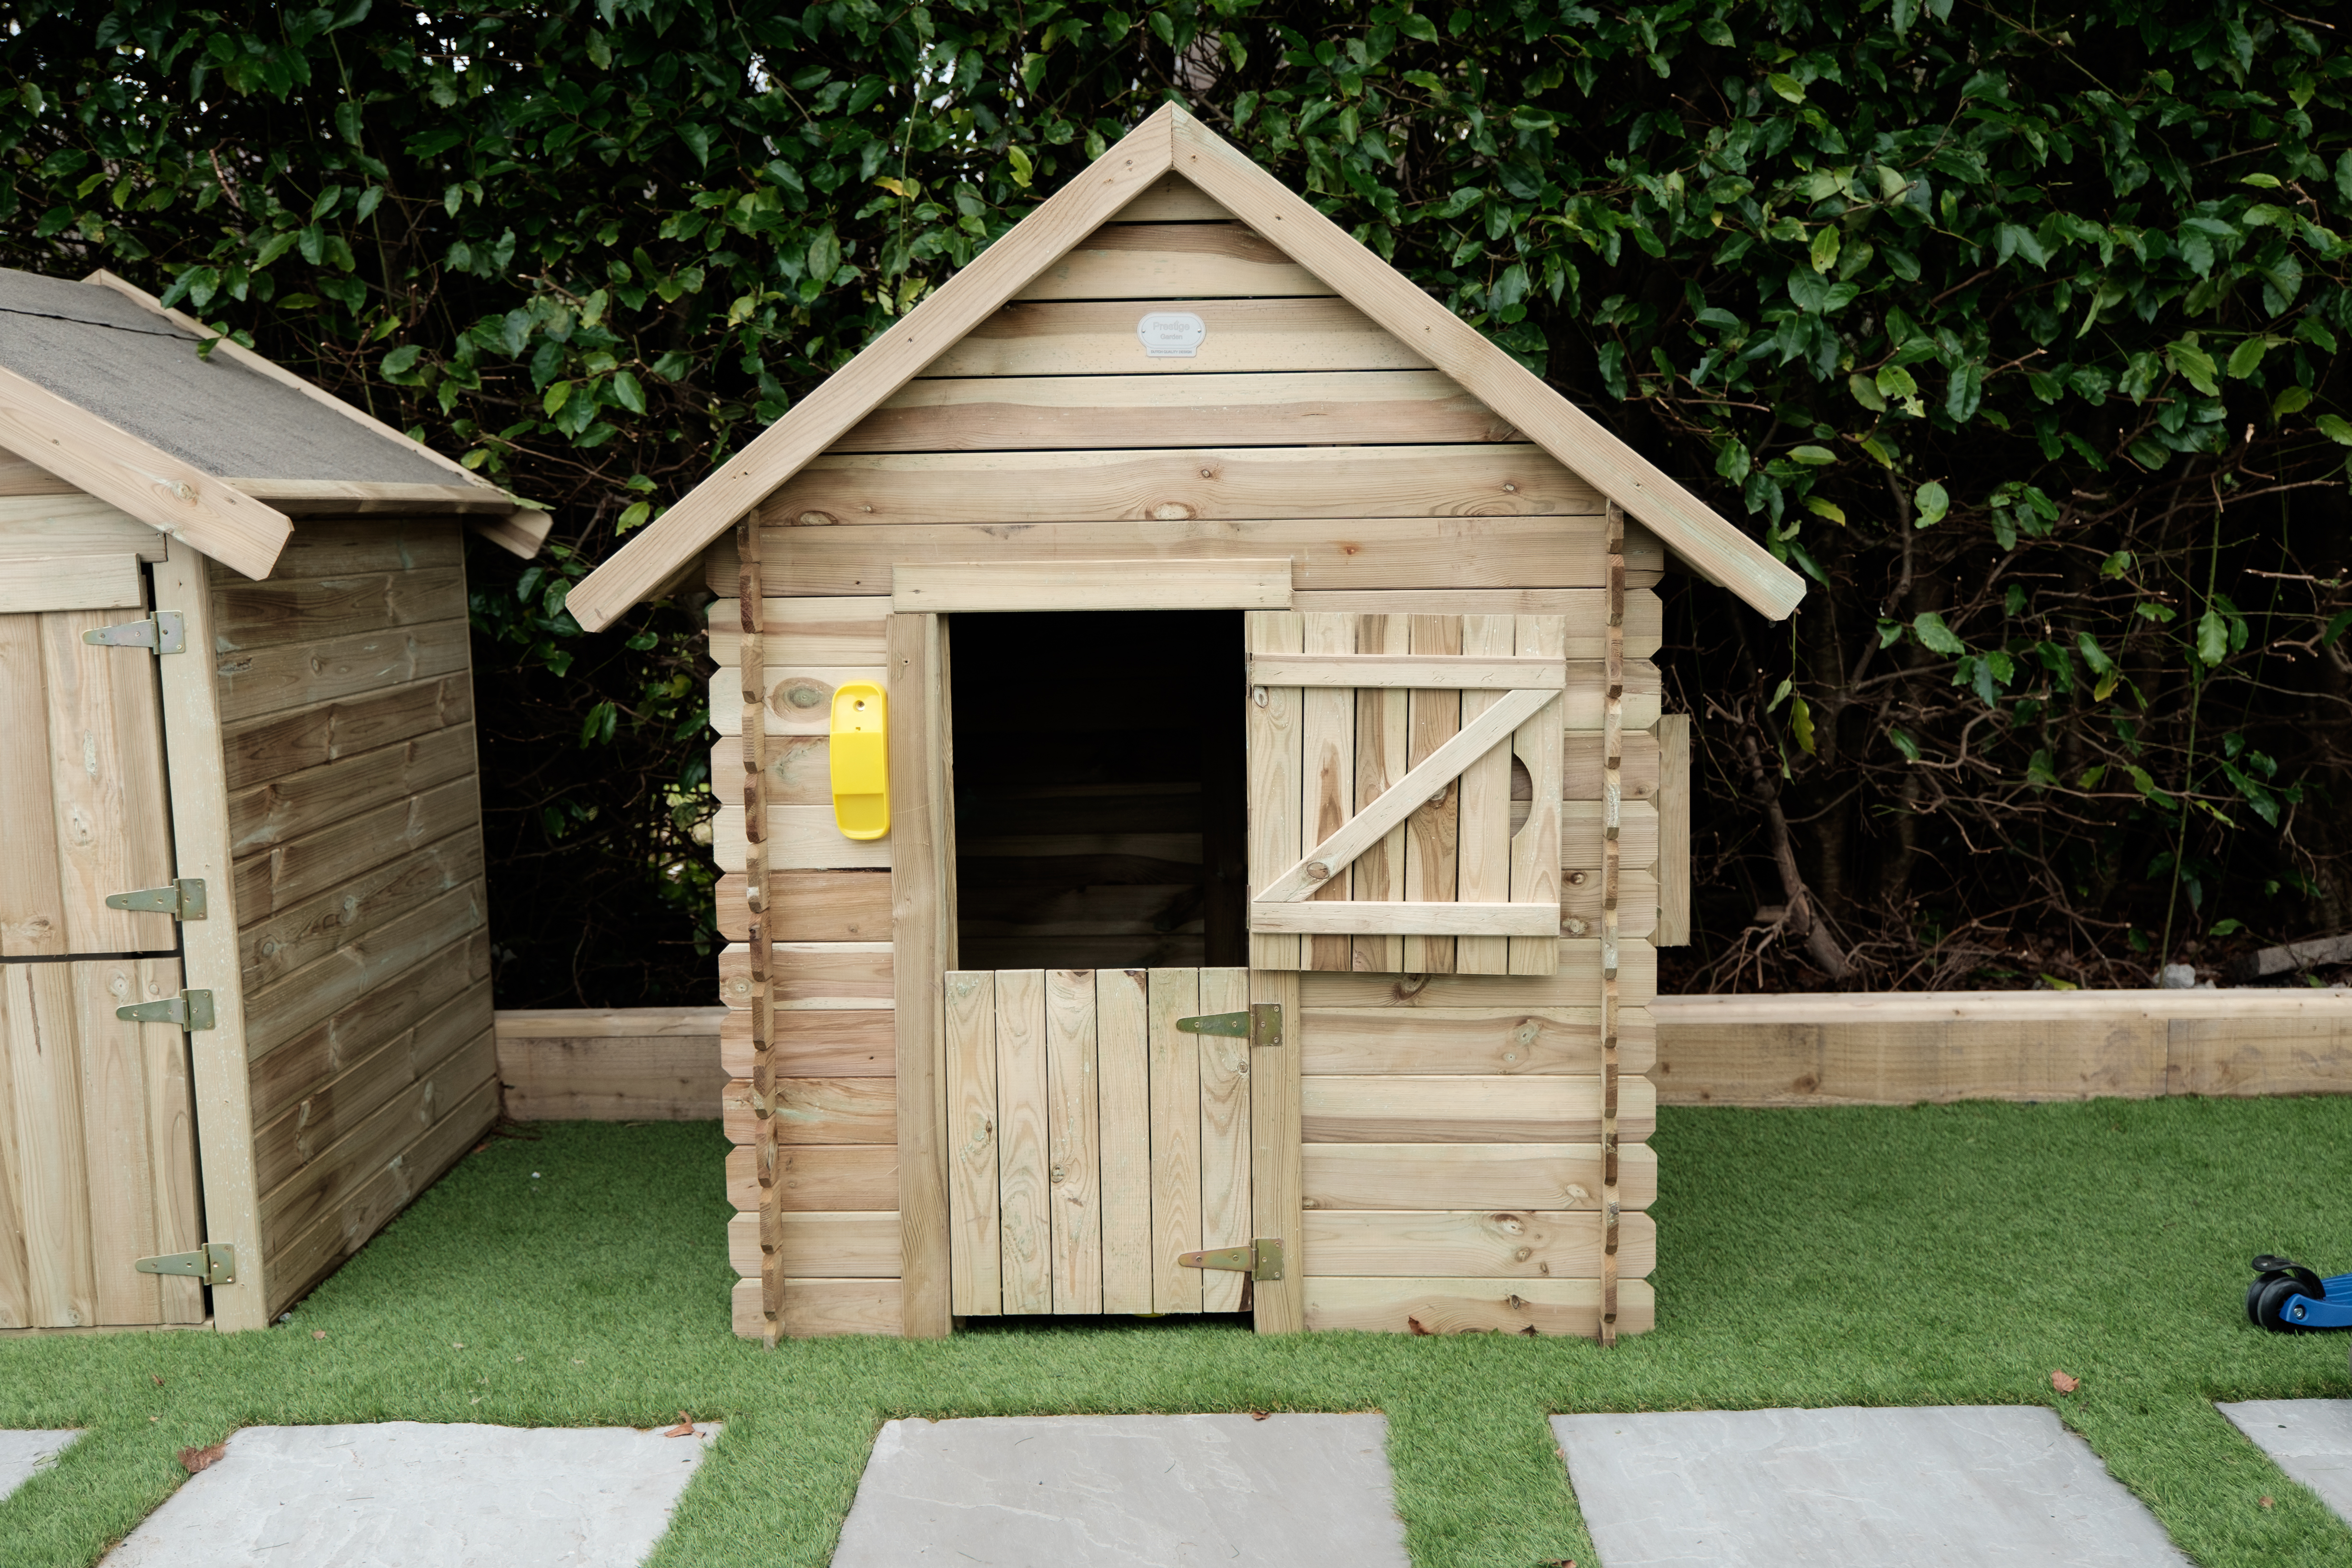 Wooden Playhouse Playhouses Kids Playhouse Outdoor Playhouse